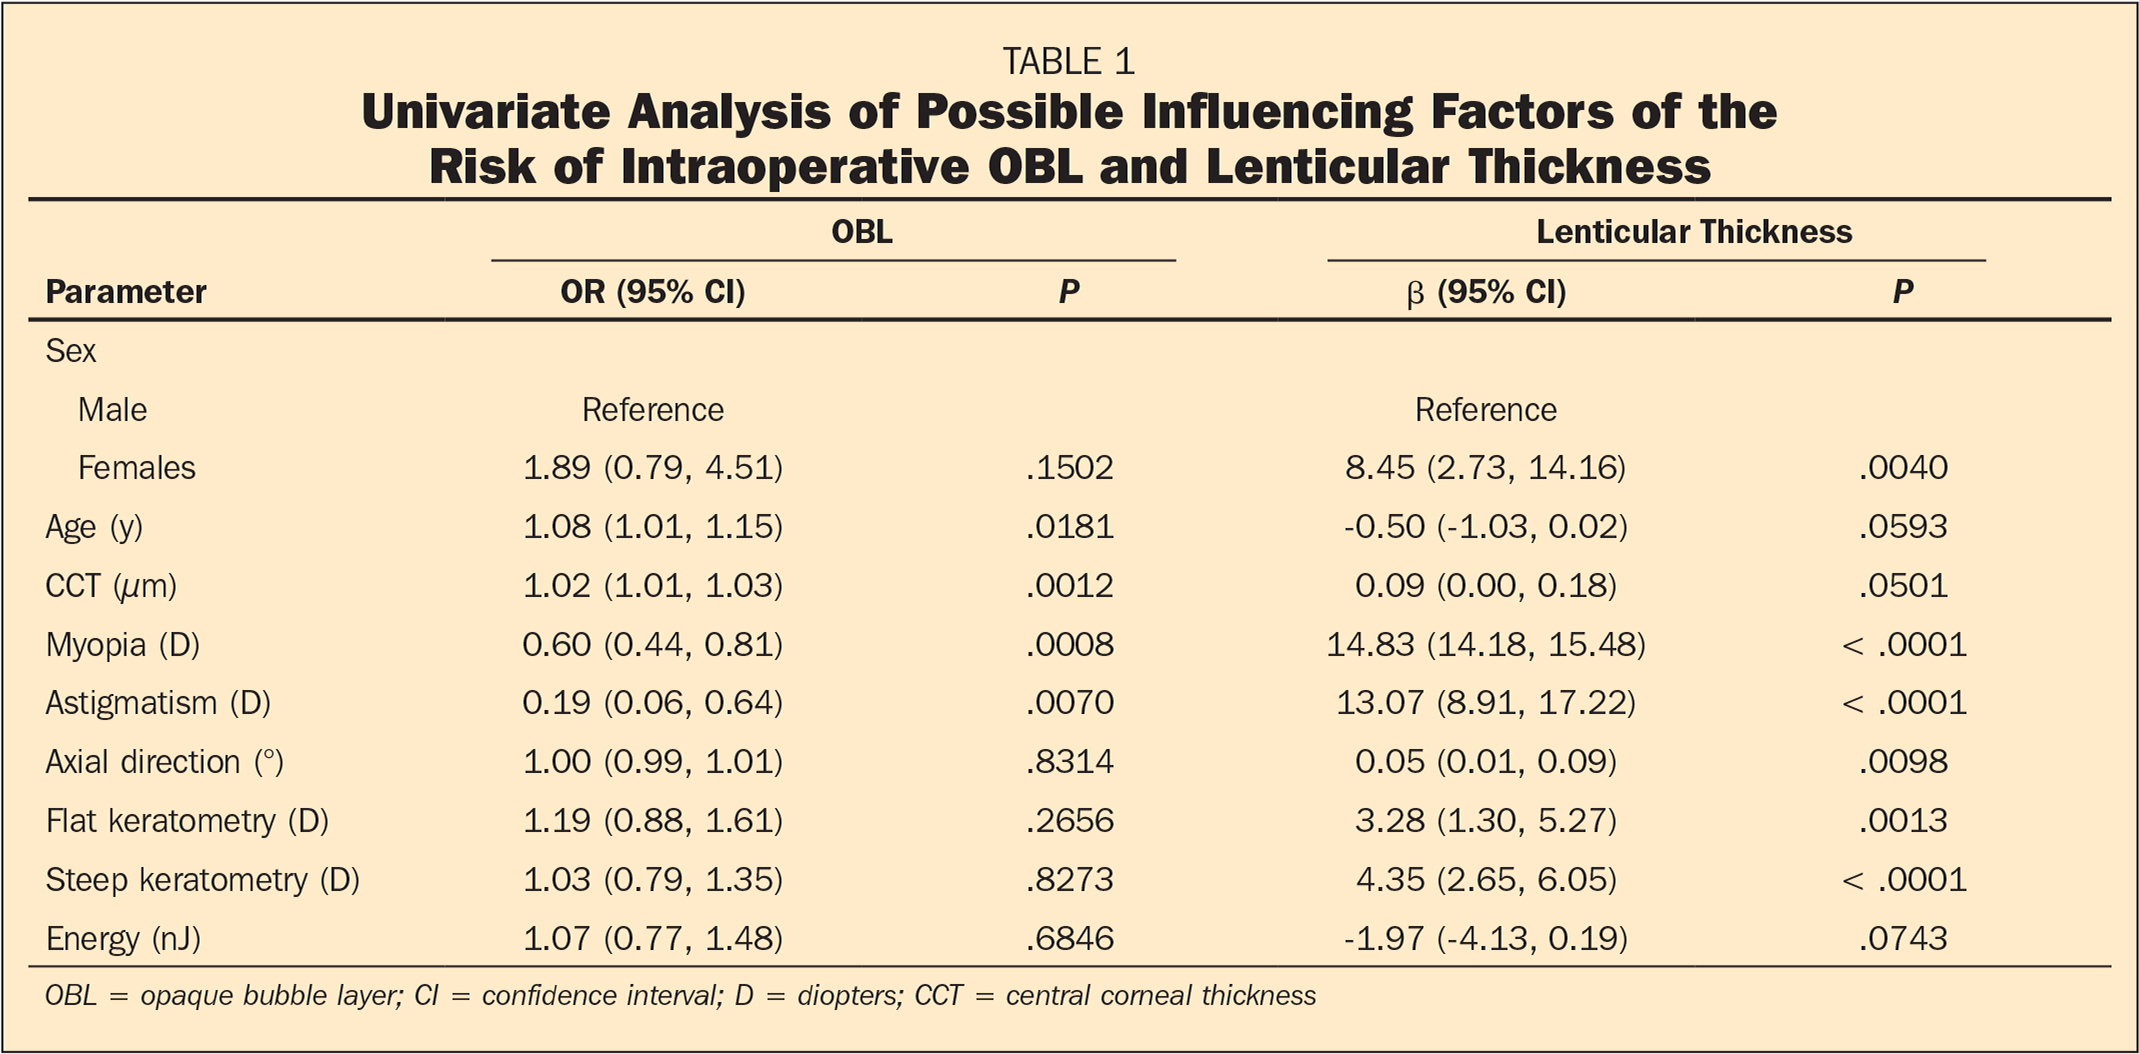 Univariate Analysis of Possible Influencing Factors of the Risk of Intraoperative OBL and Lenticular Thickness